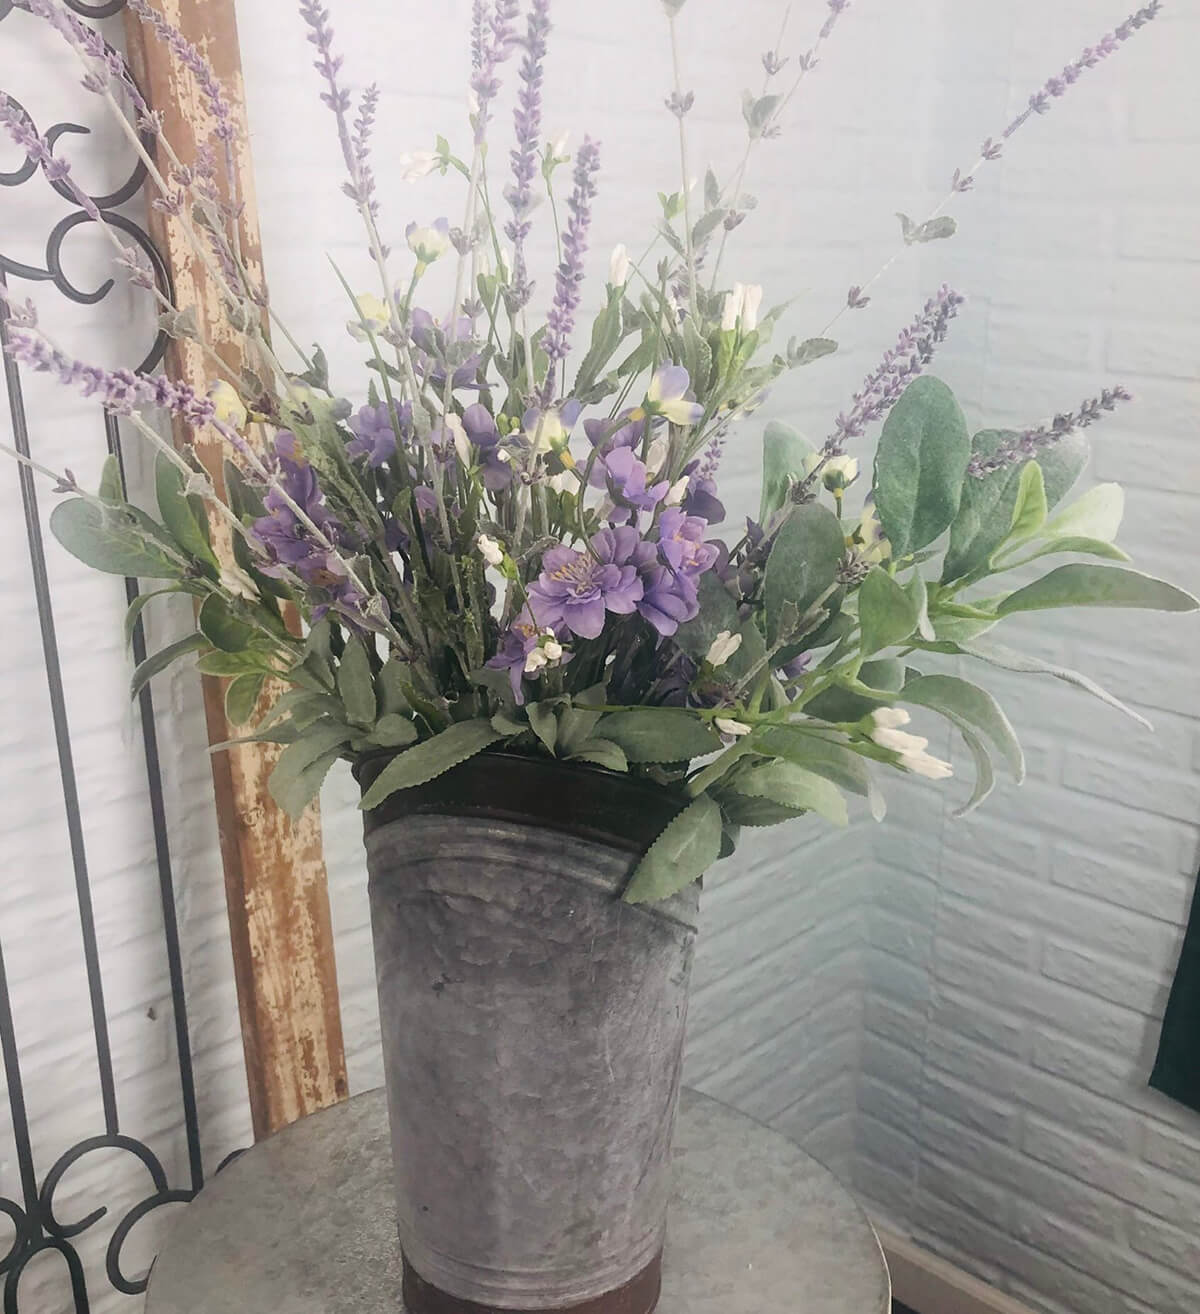 A Rustic Lavender Tabletop Arrangement